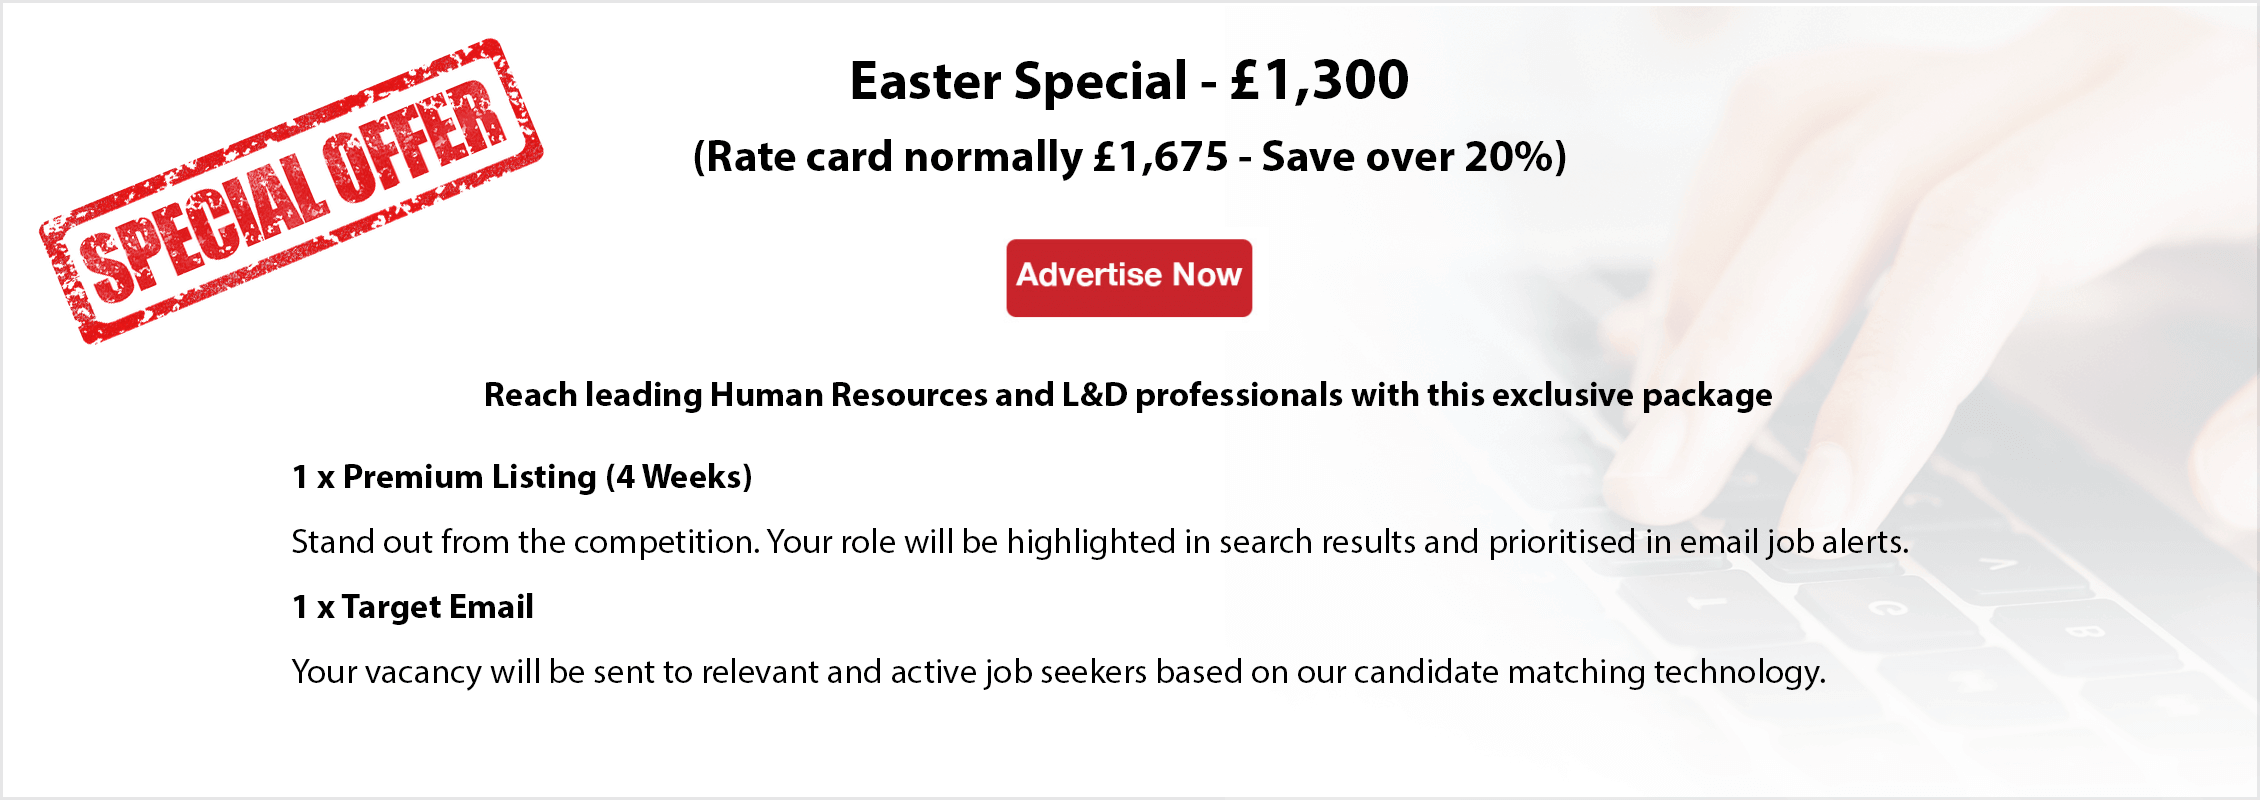 Easter Special - £1,300. Rate card normally £1,675 - save over 20%. Advertise now. Reach leading Human Resources and L&D professionals with this exclusive package. 1x Premium Listing (4 weeks). Stand out from the competition. Your role will be highlighted in search results and prioritised in email job alerts. 1x Target Email. Your vacancy will be sent to relevant and active job seekers based on our candidate matching technology.